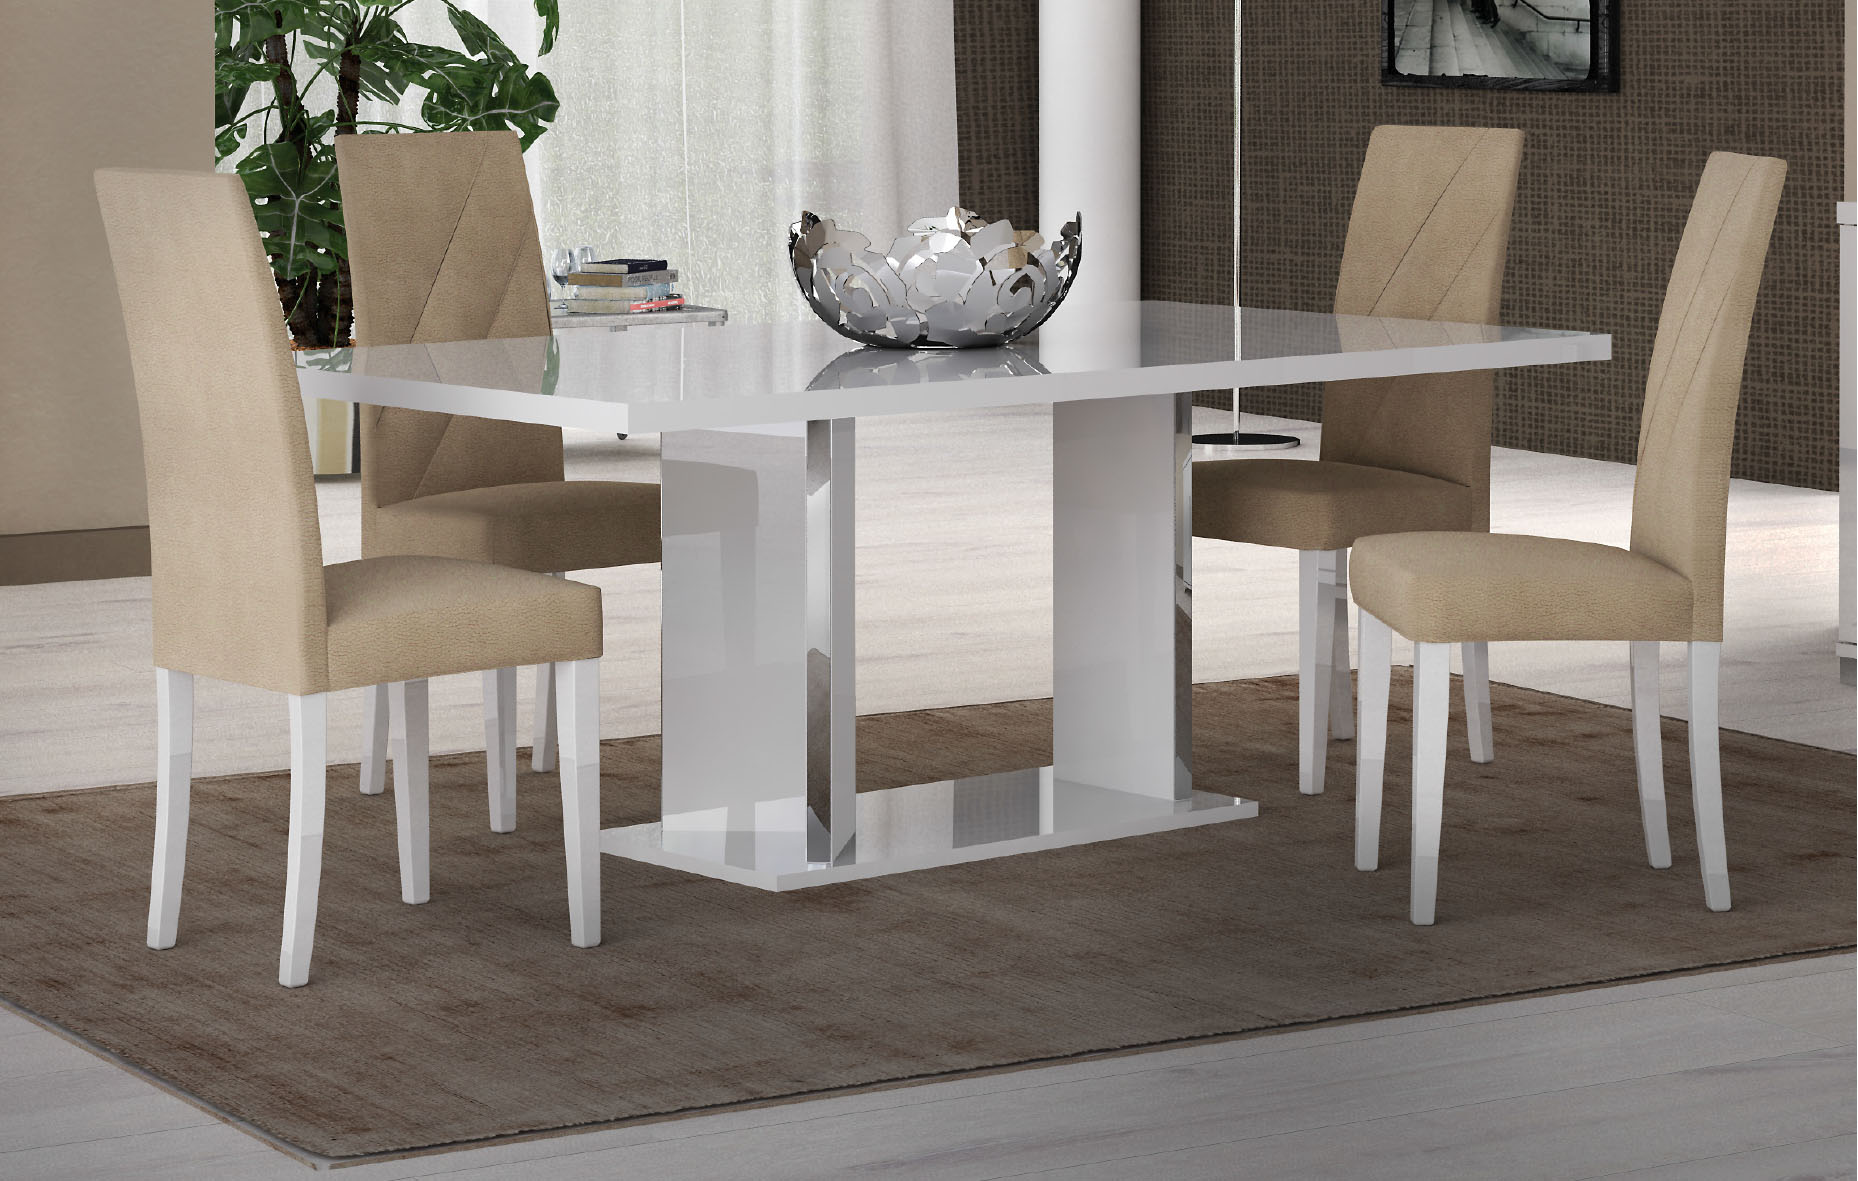 D313 Modern Dining Room Set In White Lacquer Finish: Lisa Dining Room, Italy, Modern Formal Dining Sets, Dining